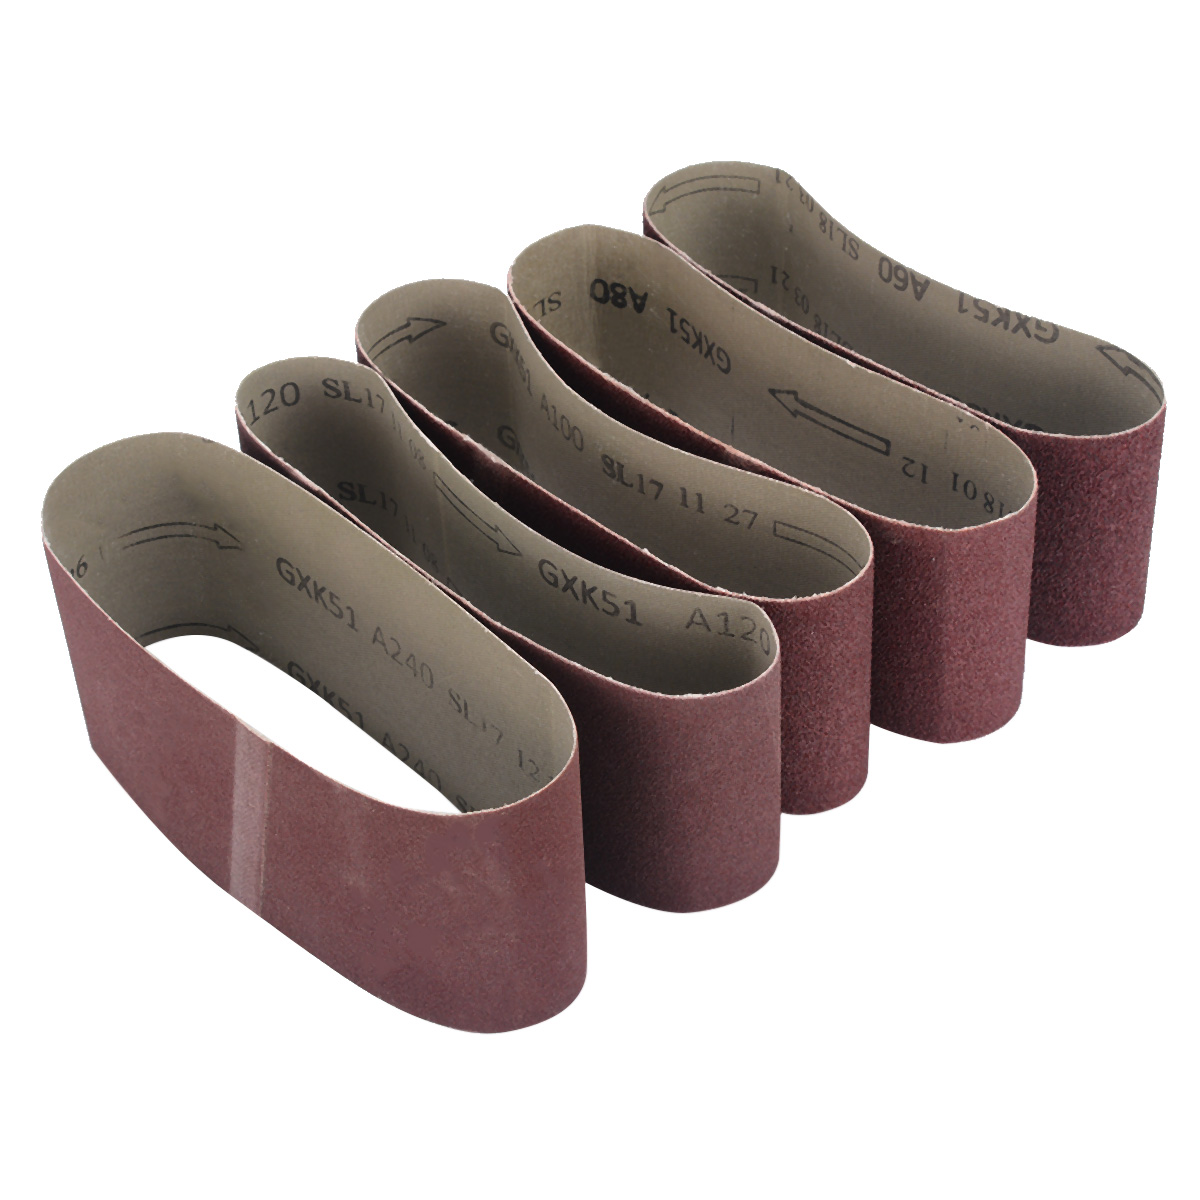 5pcs 75*457mm Abrasive Sanding Belts Grits Sander Power Abrasive Tools  60/80/100/120/240